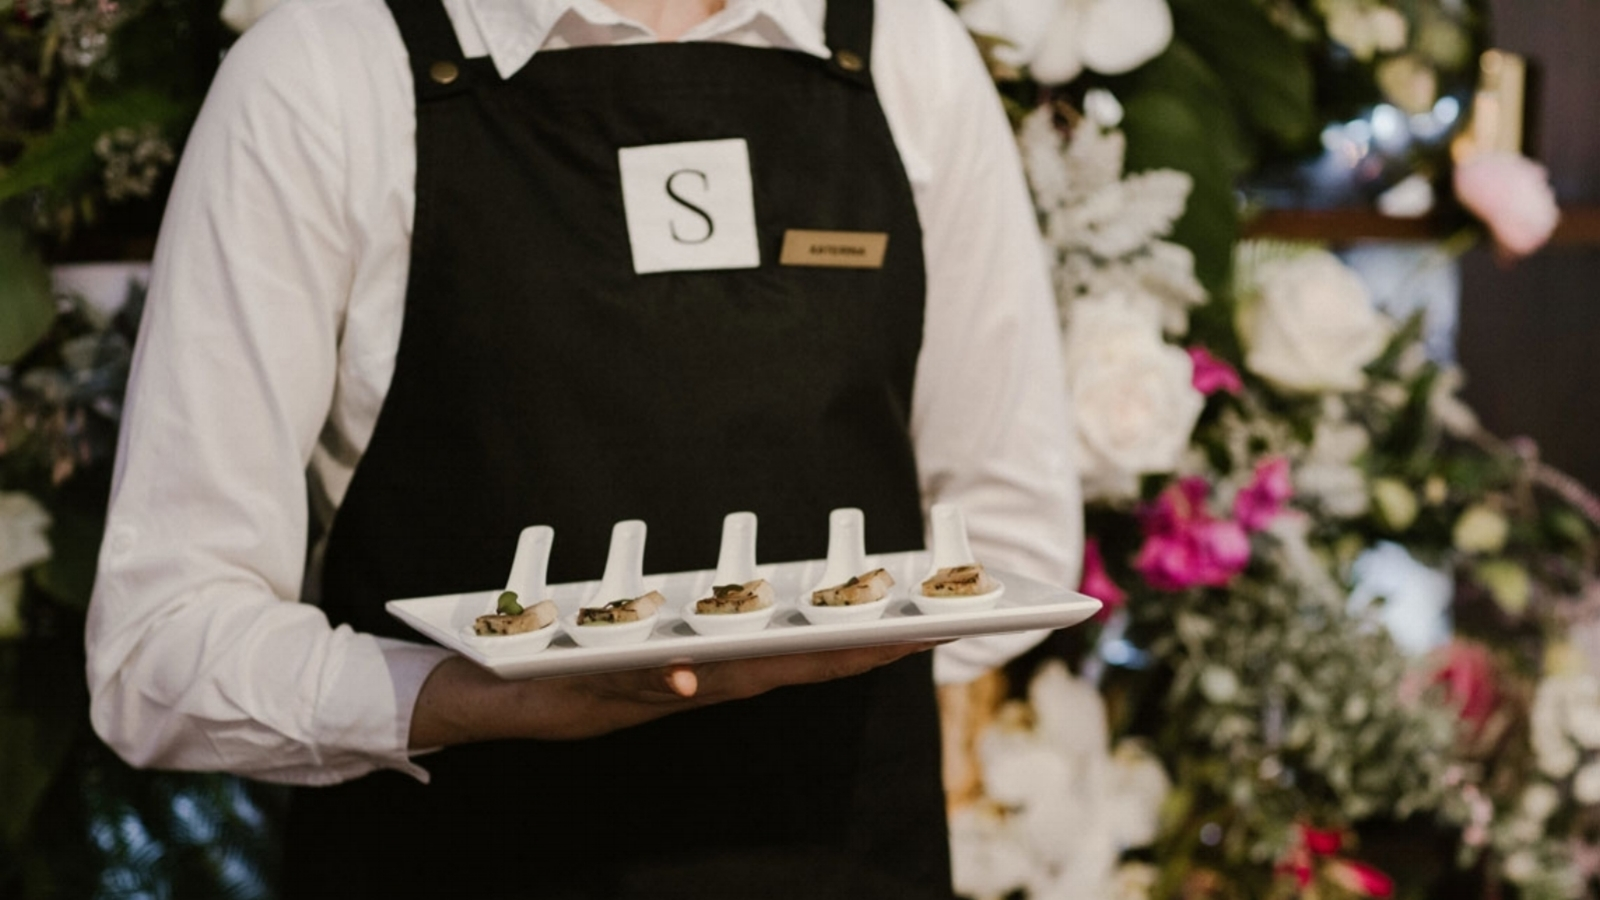 Samphire_Catering_Perth_Weddings_Events_Catering_Trends_Summer_2018_2.jpg